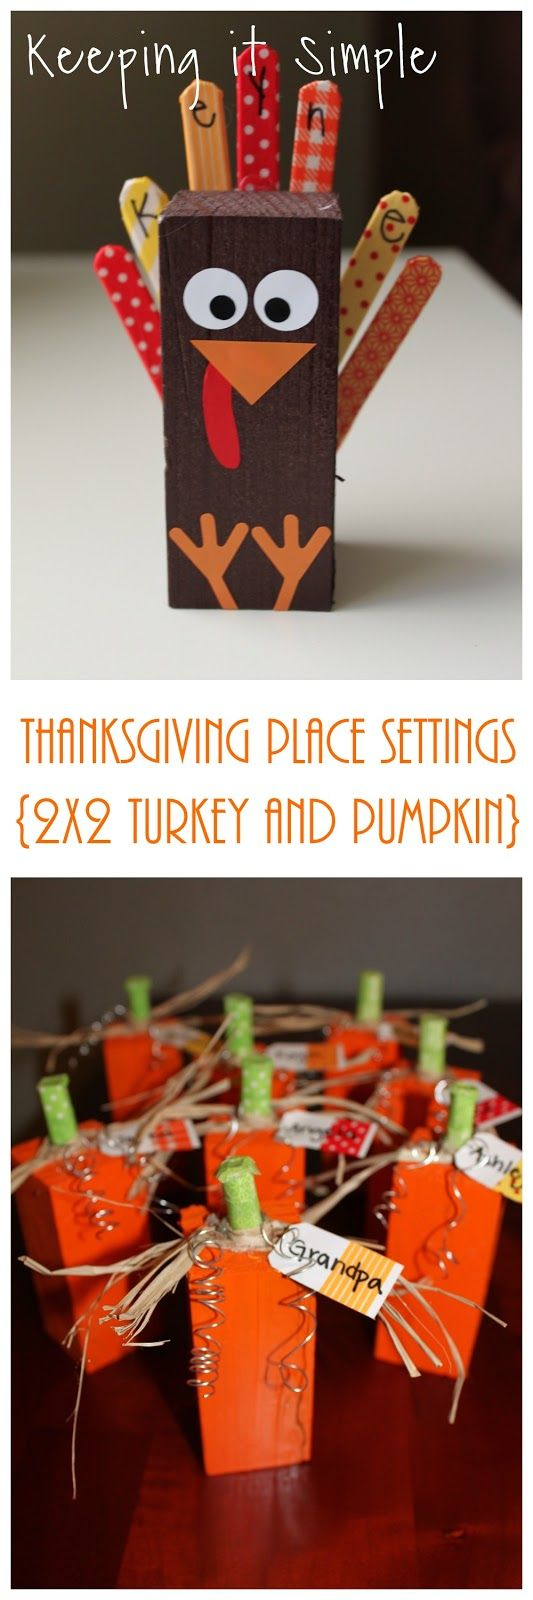 Keeping it Simple: Thanksgiving Place Settings- 2x2 Wood Turkey and Pumpkin